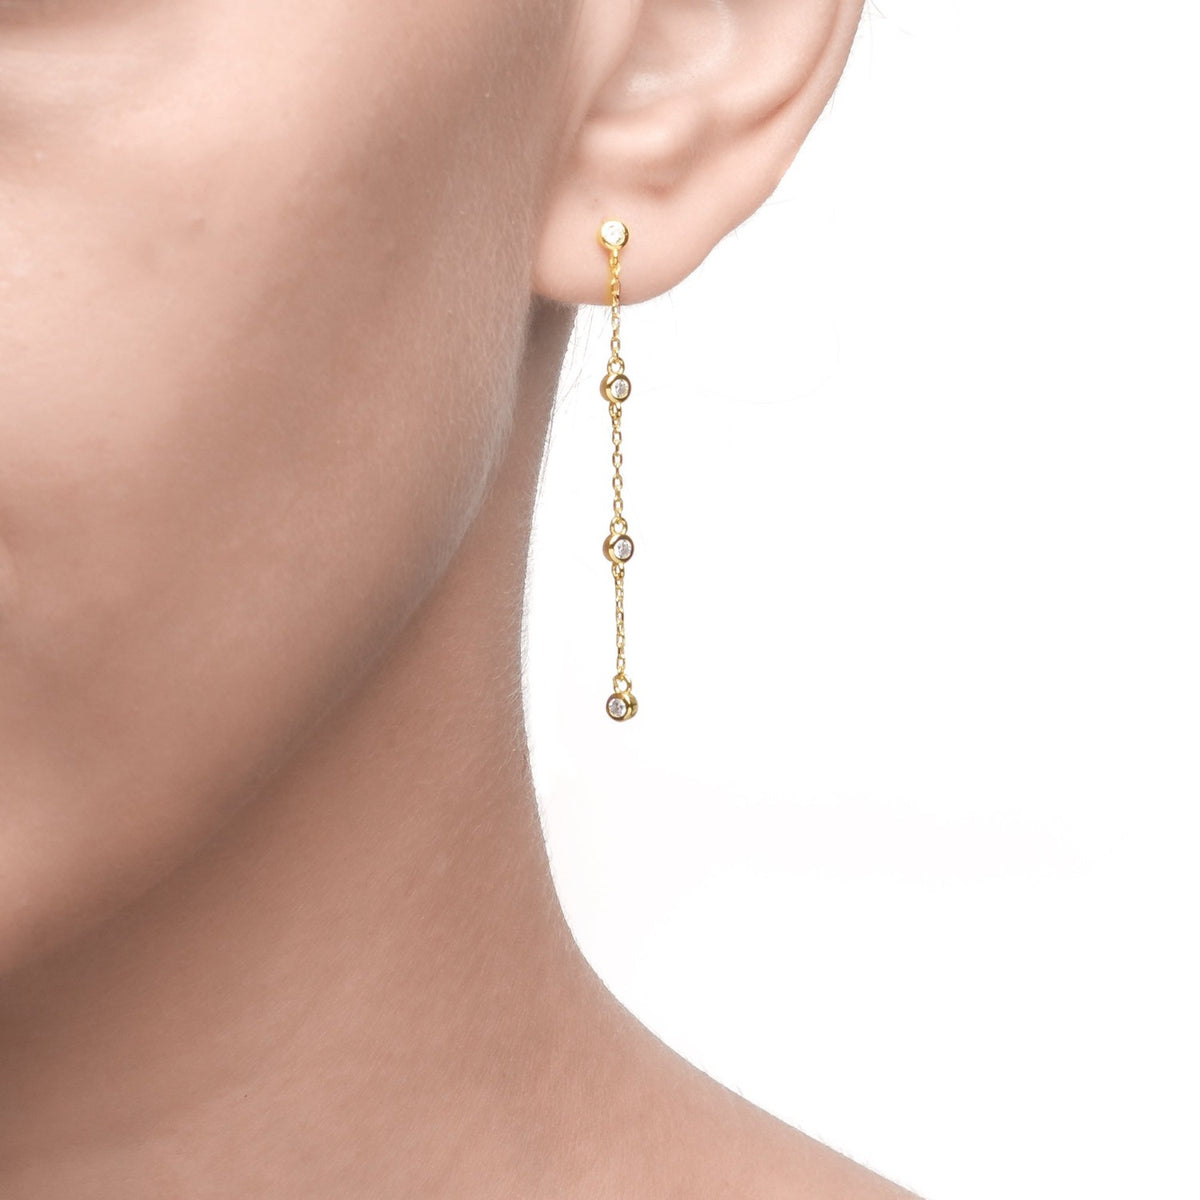 Fortuna | Bolzano Earrings | 925 Silver | White CZ | 18K Gold Plated